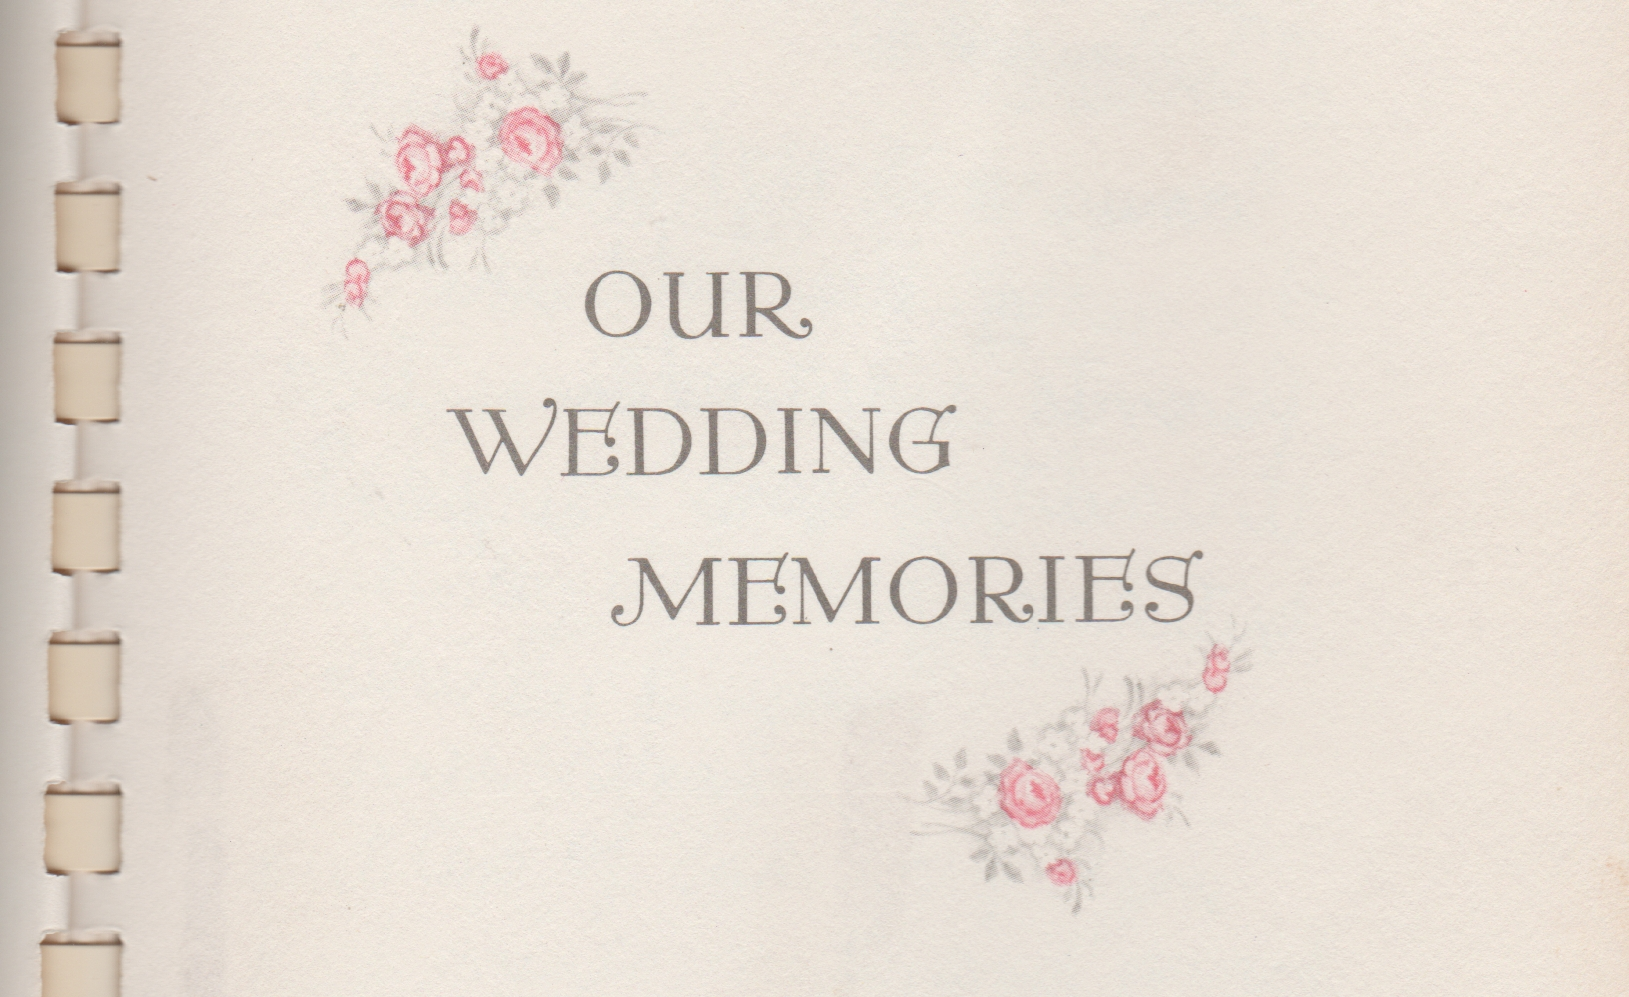 1971-09-04 - Saturday - Wedding Photos-13 - COVER.jpg